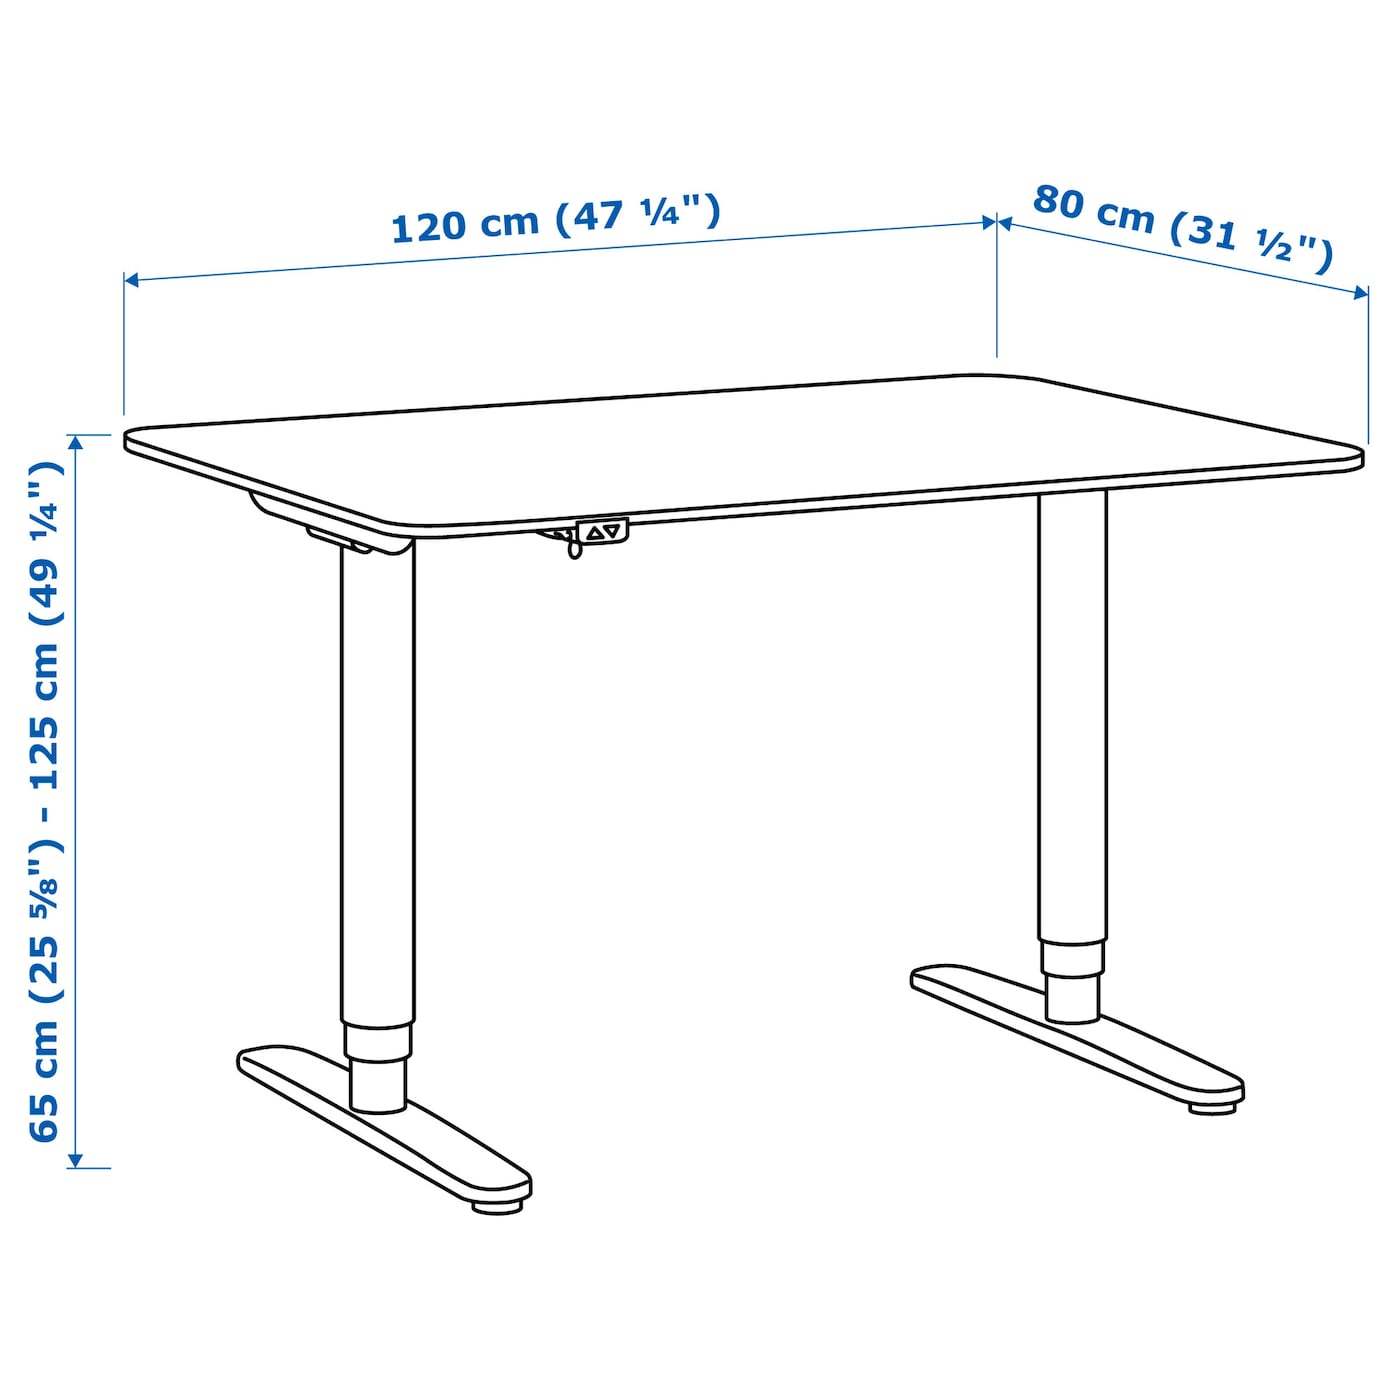 chris review s sidebyside and blog desk skarsta martin posts sit stand standing configurations ikea in sitting